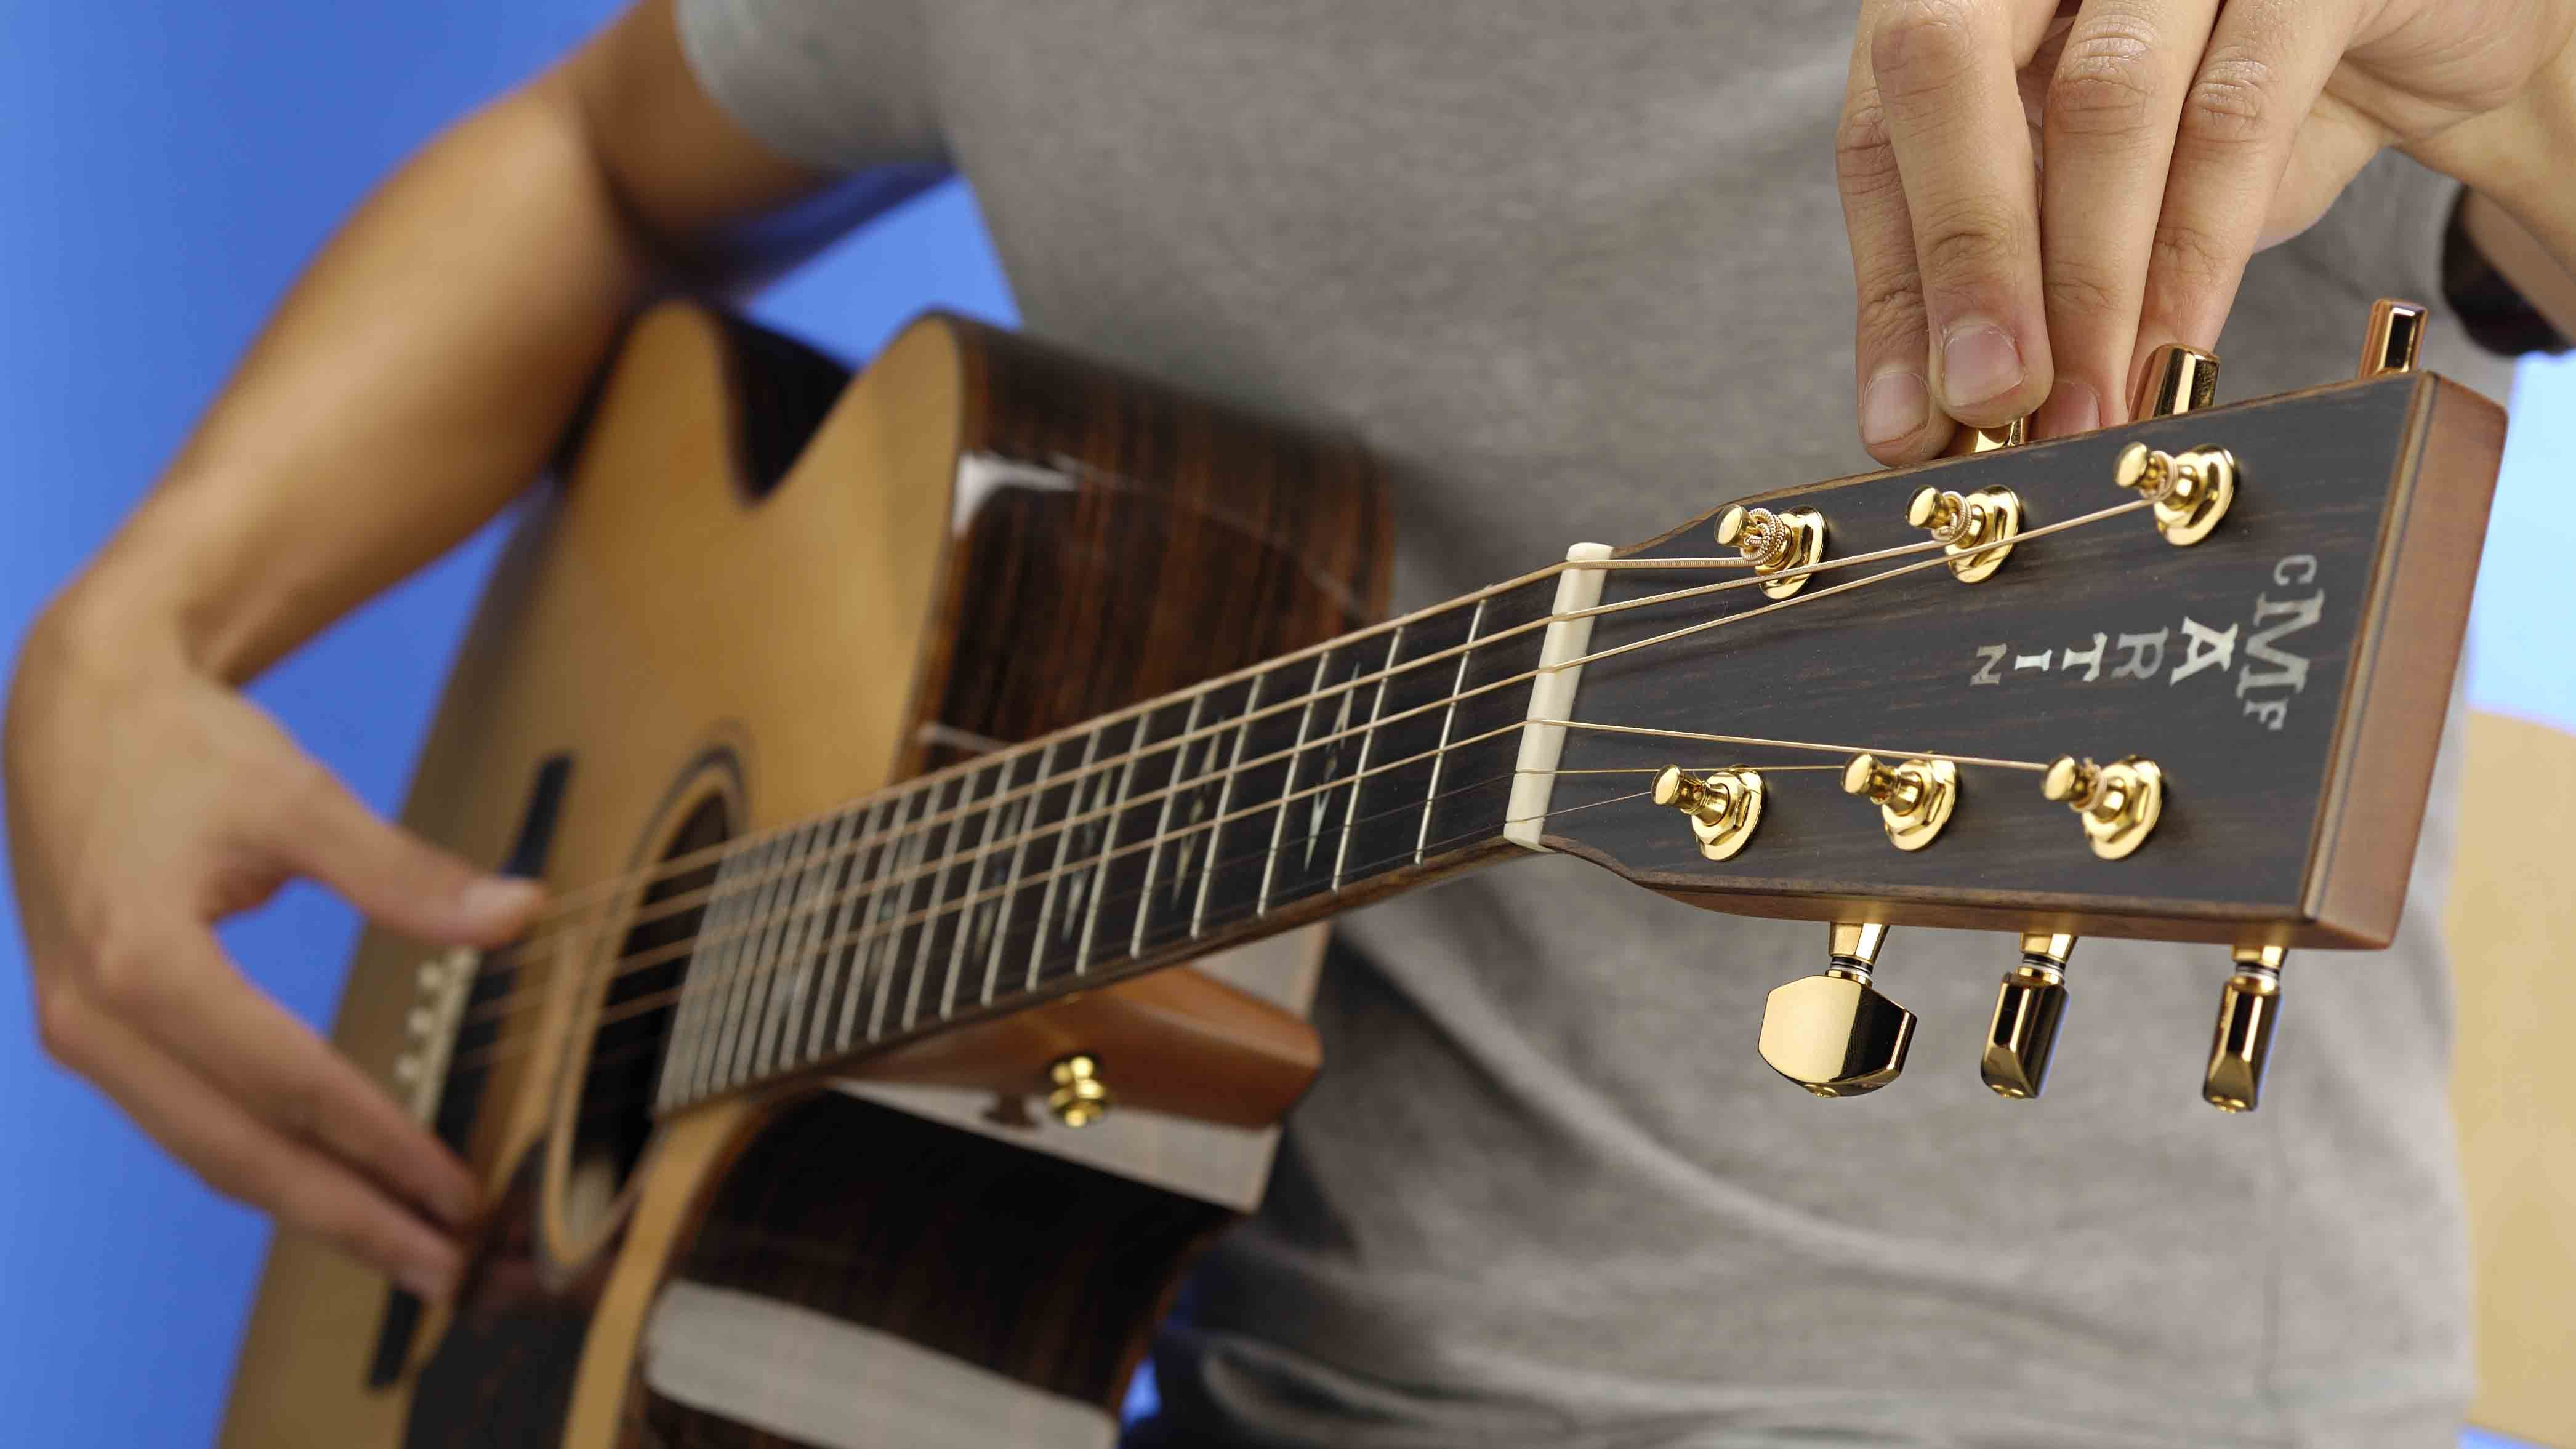 How To Tune Your Guitar By Ear Guitar Guitar Tuning Guitar Tuners